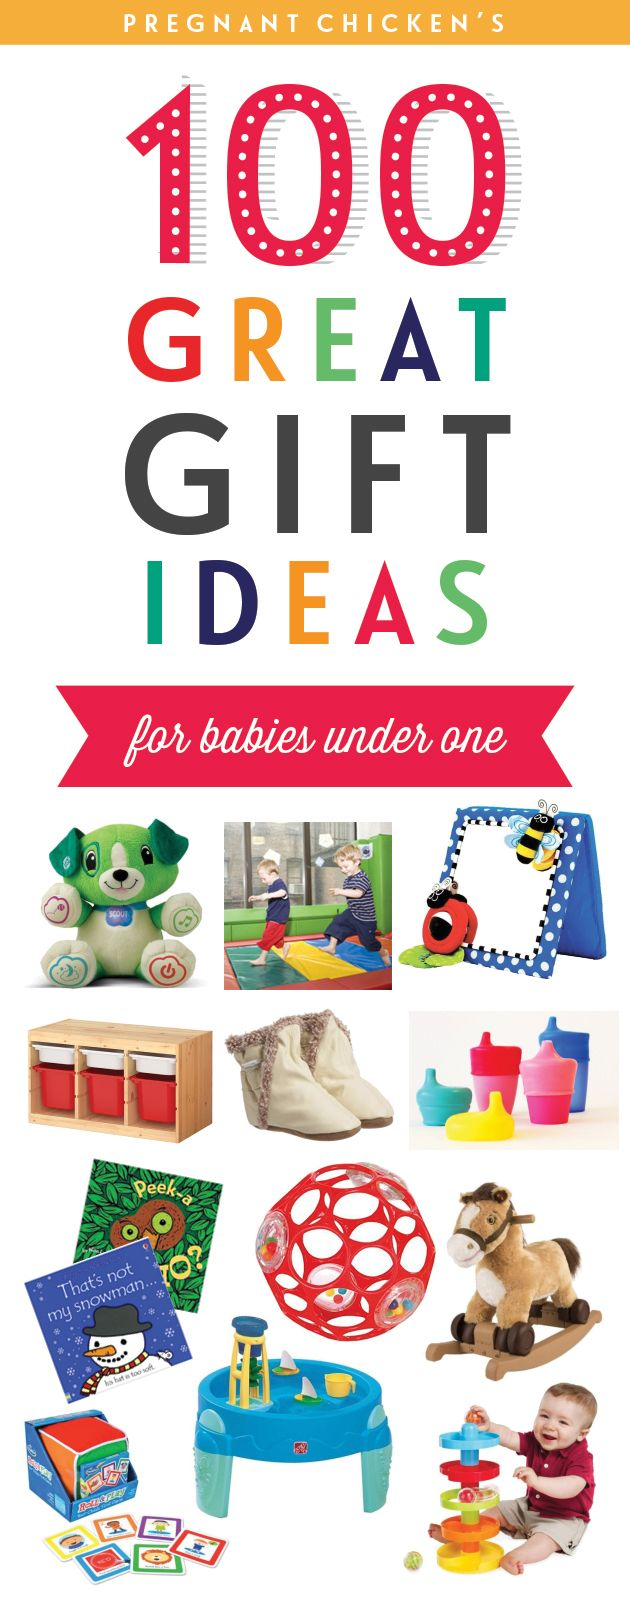 For when you're stumped at the next first birthday party you're invited to! 100 Great Gifts Ideas for Babies Under One | Pregnant Chicken